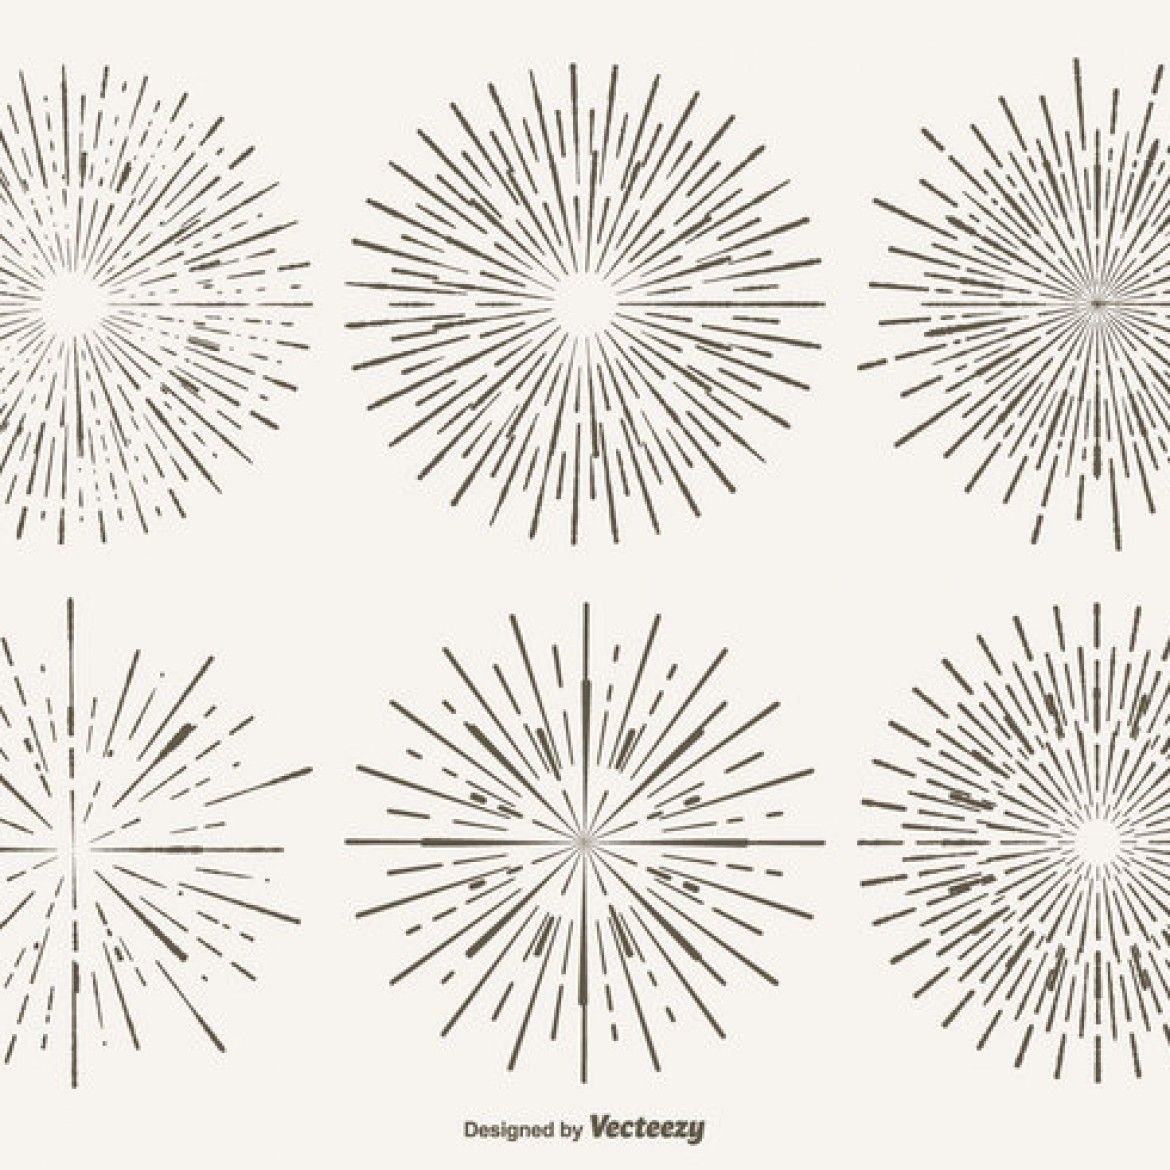 Pin By Yamileth Maiden On Yarn Crafts Vector Art Design Starburst Vector Art Here you can explore hq starburst transparent illustrations, icons and clipart with filter setting like size, type, color etc. vector art design starburst vector art